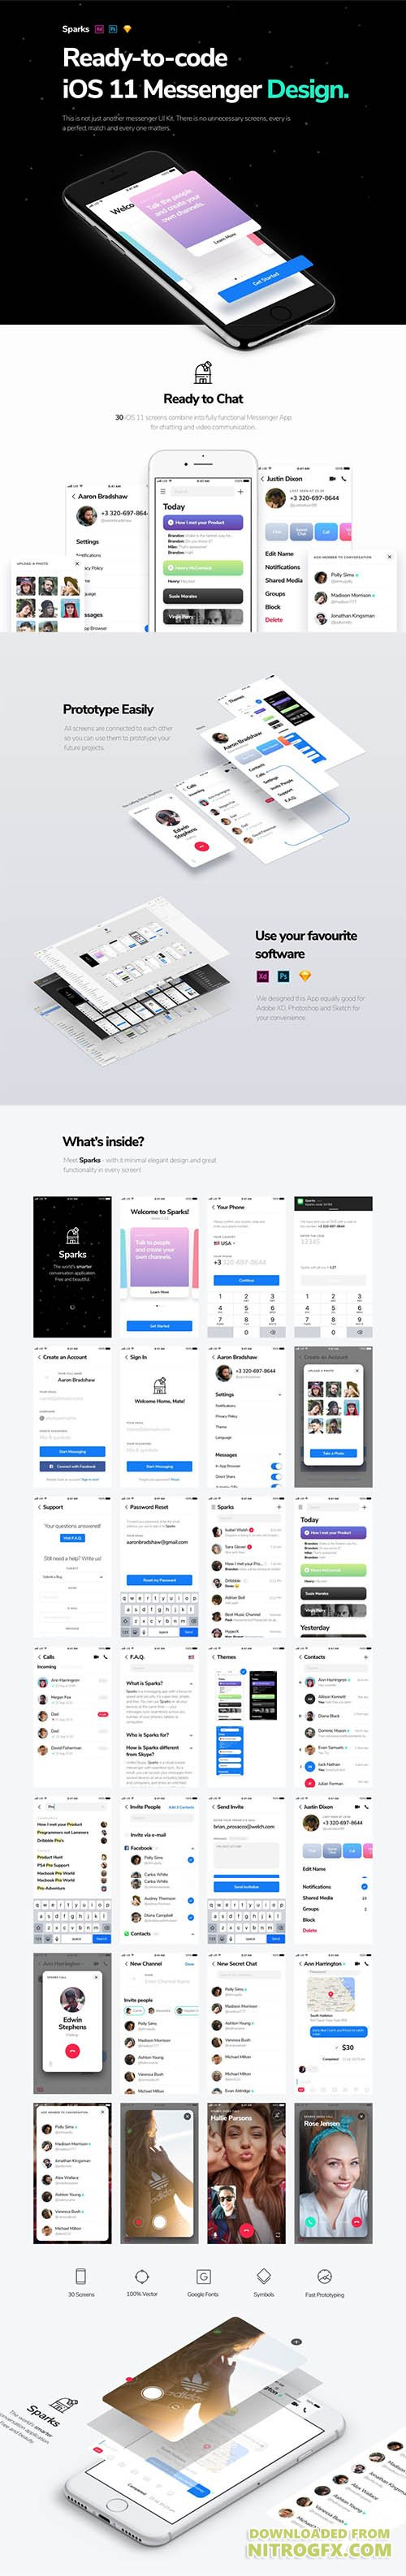 Sparks iOS 11 UI Kit - iOS 11 Messaging app kit designed for Photoshop, Sketch & XD